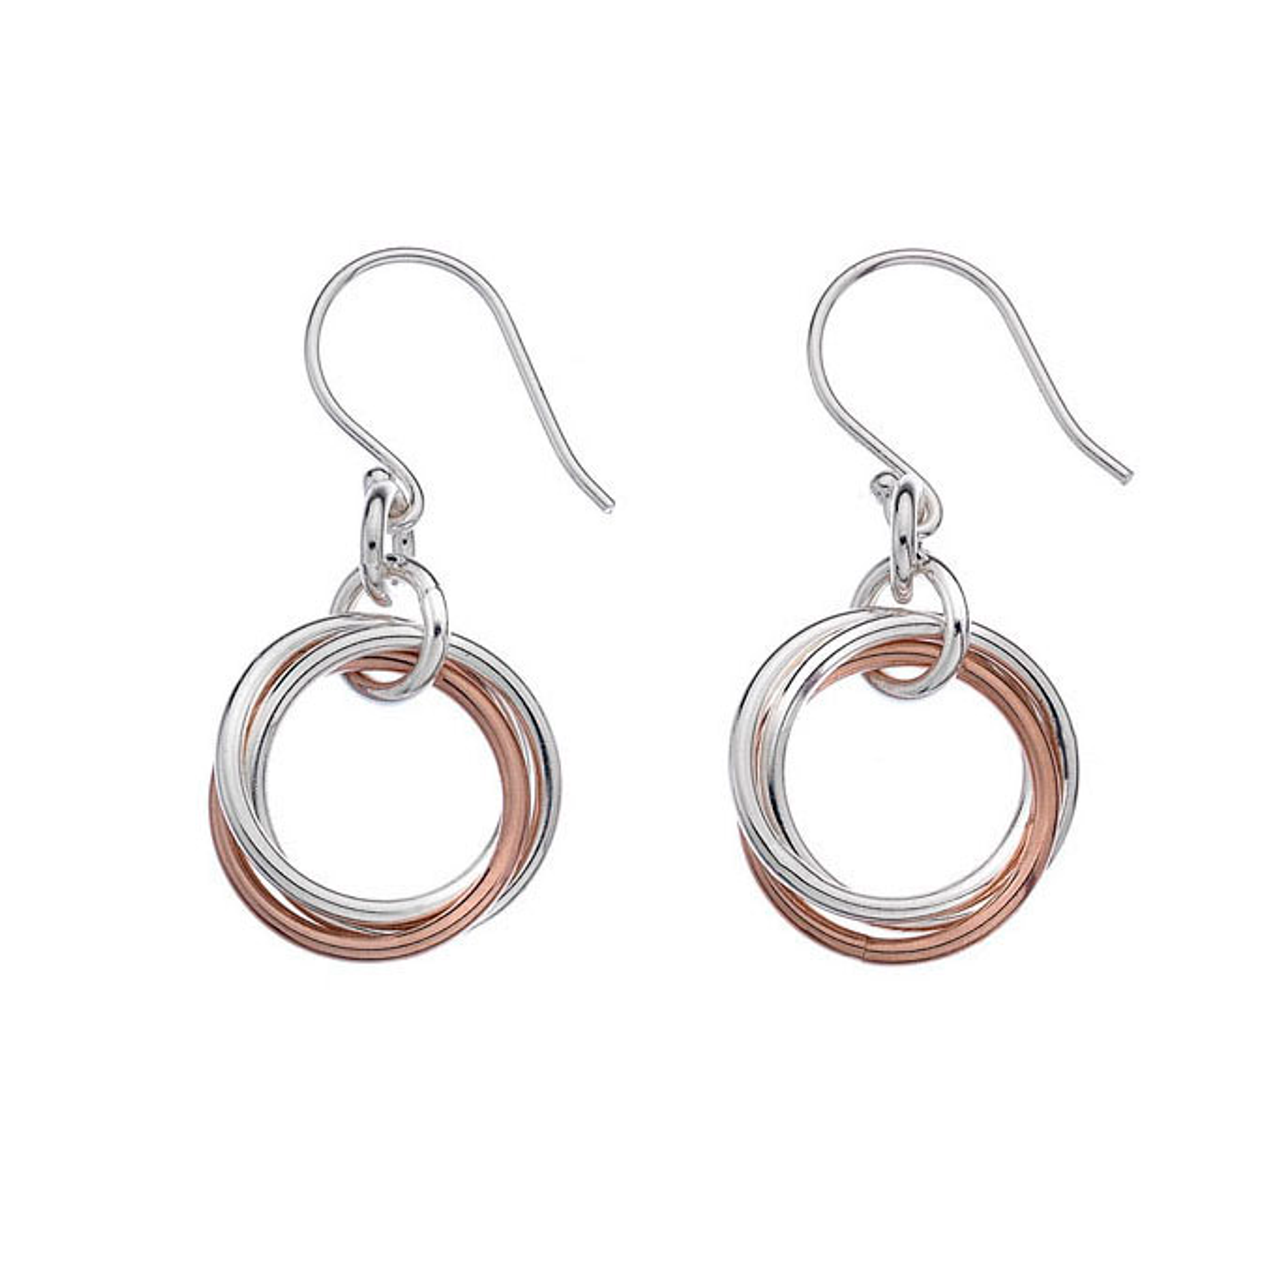 Silver & Rose Gold Russian style Drop Earrings